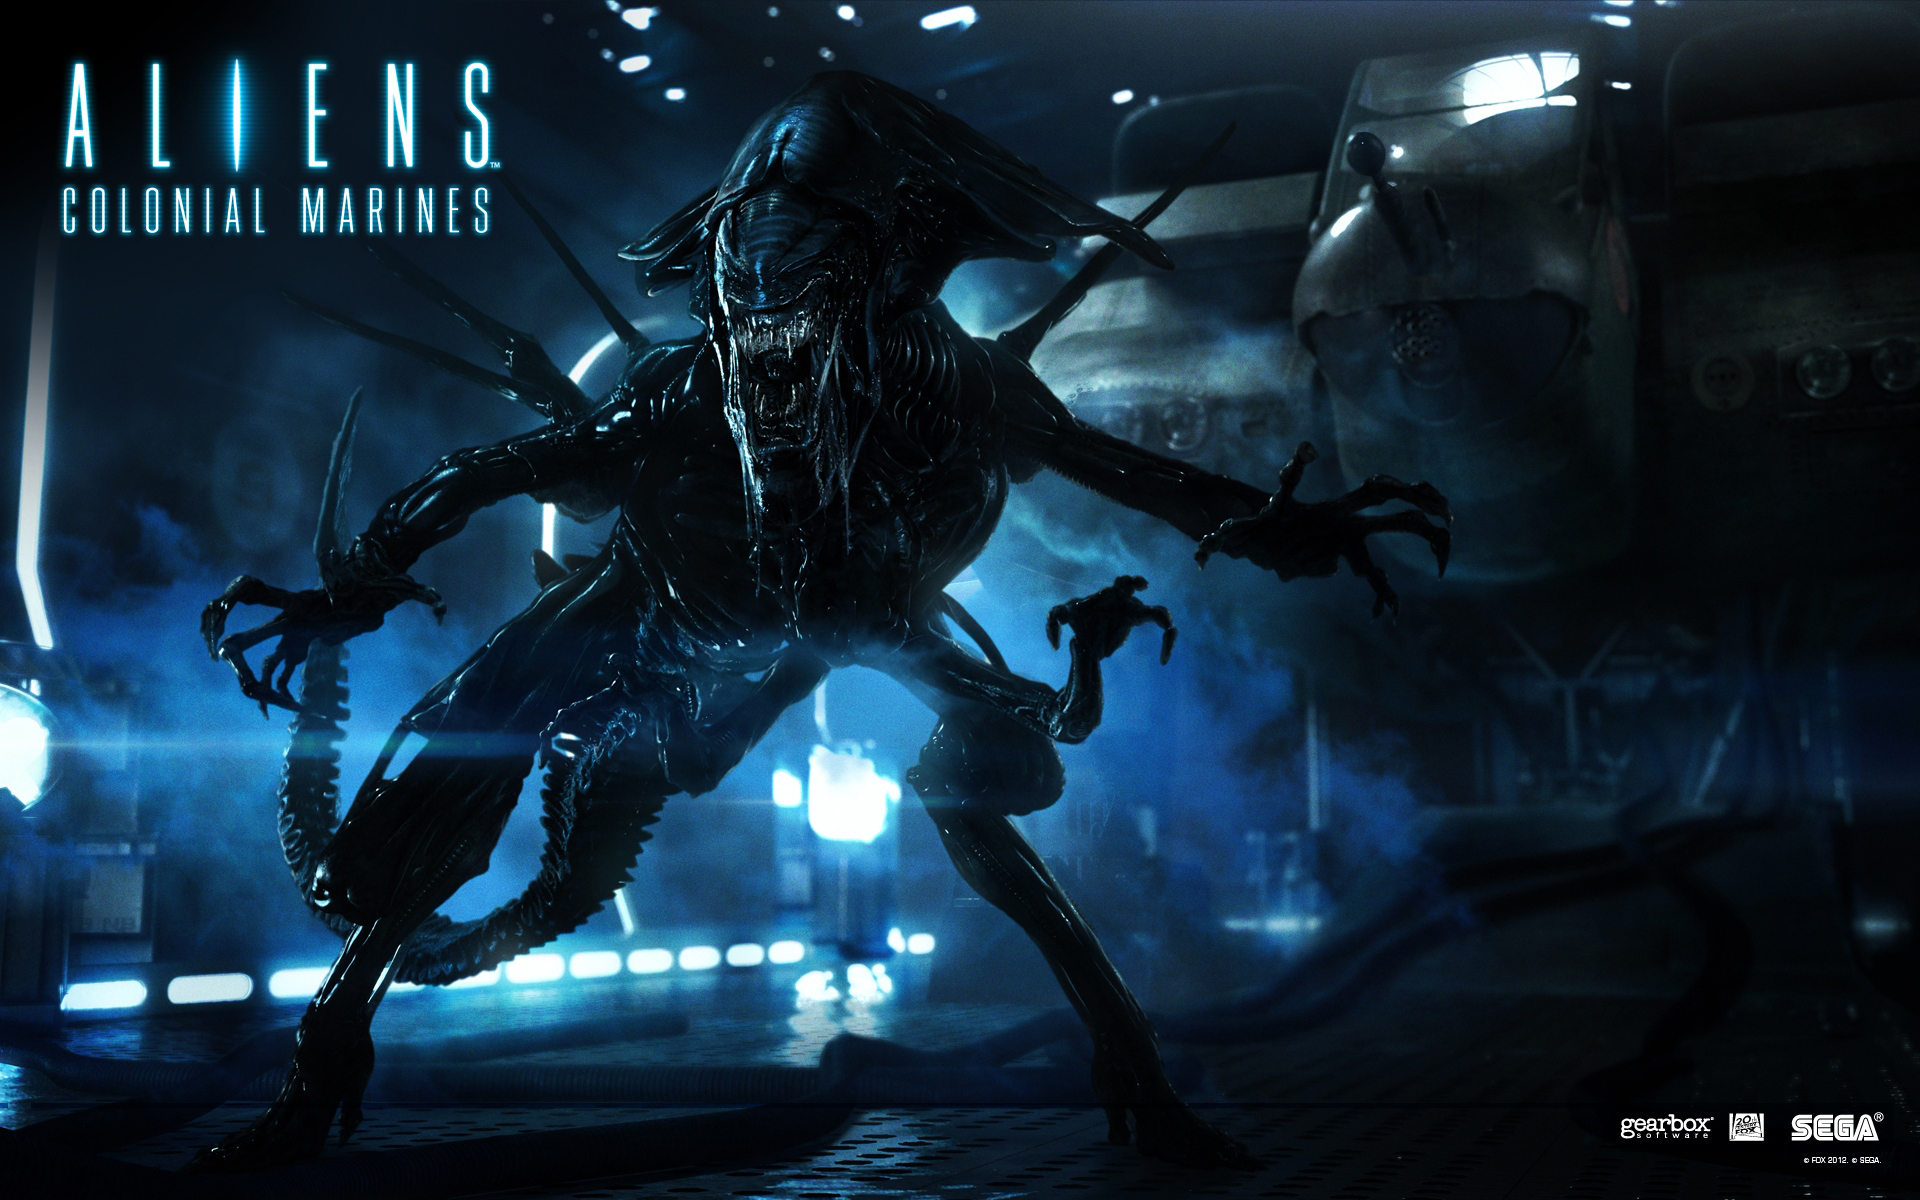 Aliens Colonial Marines 2013 Game Wallpapers HD Wallpapers 1920x1200